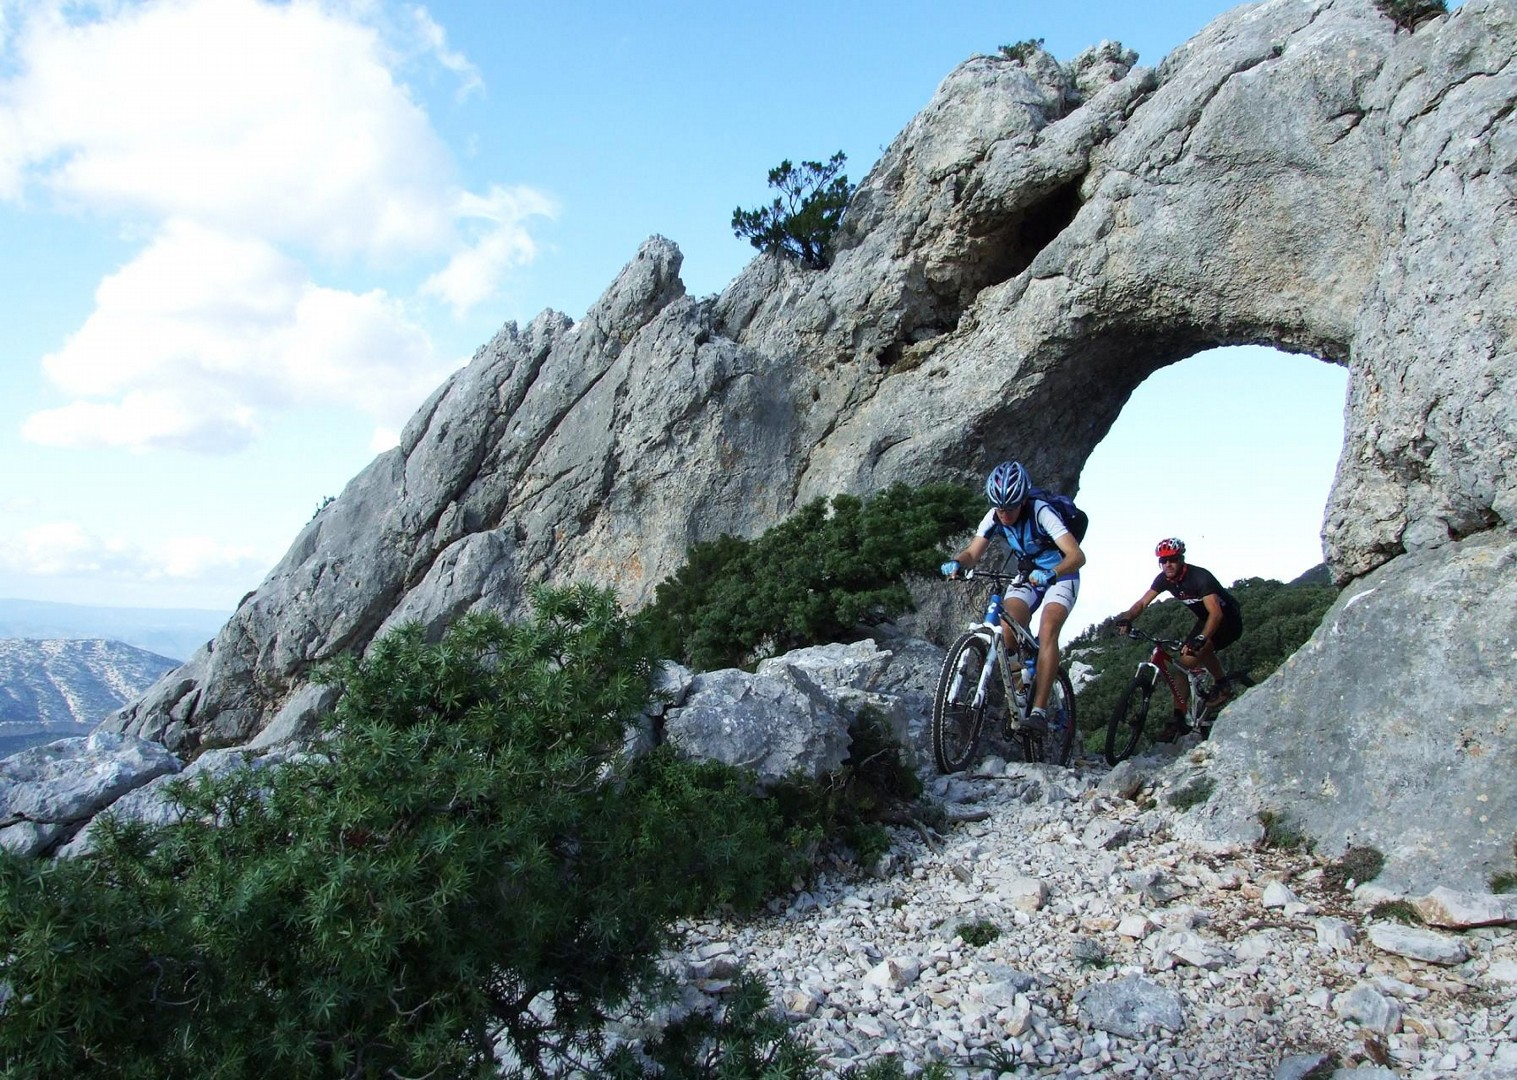 mountain-biking-holiday-in-italy-sardinia.jpg - Italy - Sardinia - Coast to Coast - Self-Guided Mountain Bike Holiday - Italia Mountain Biking